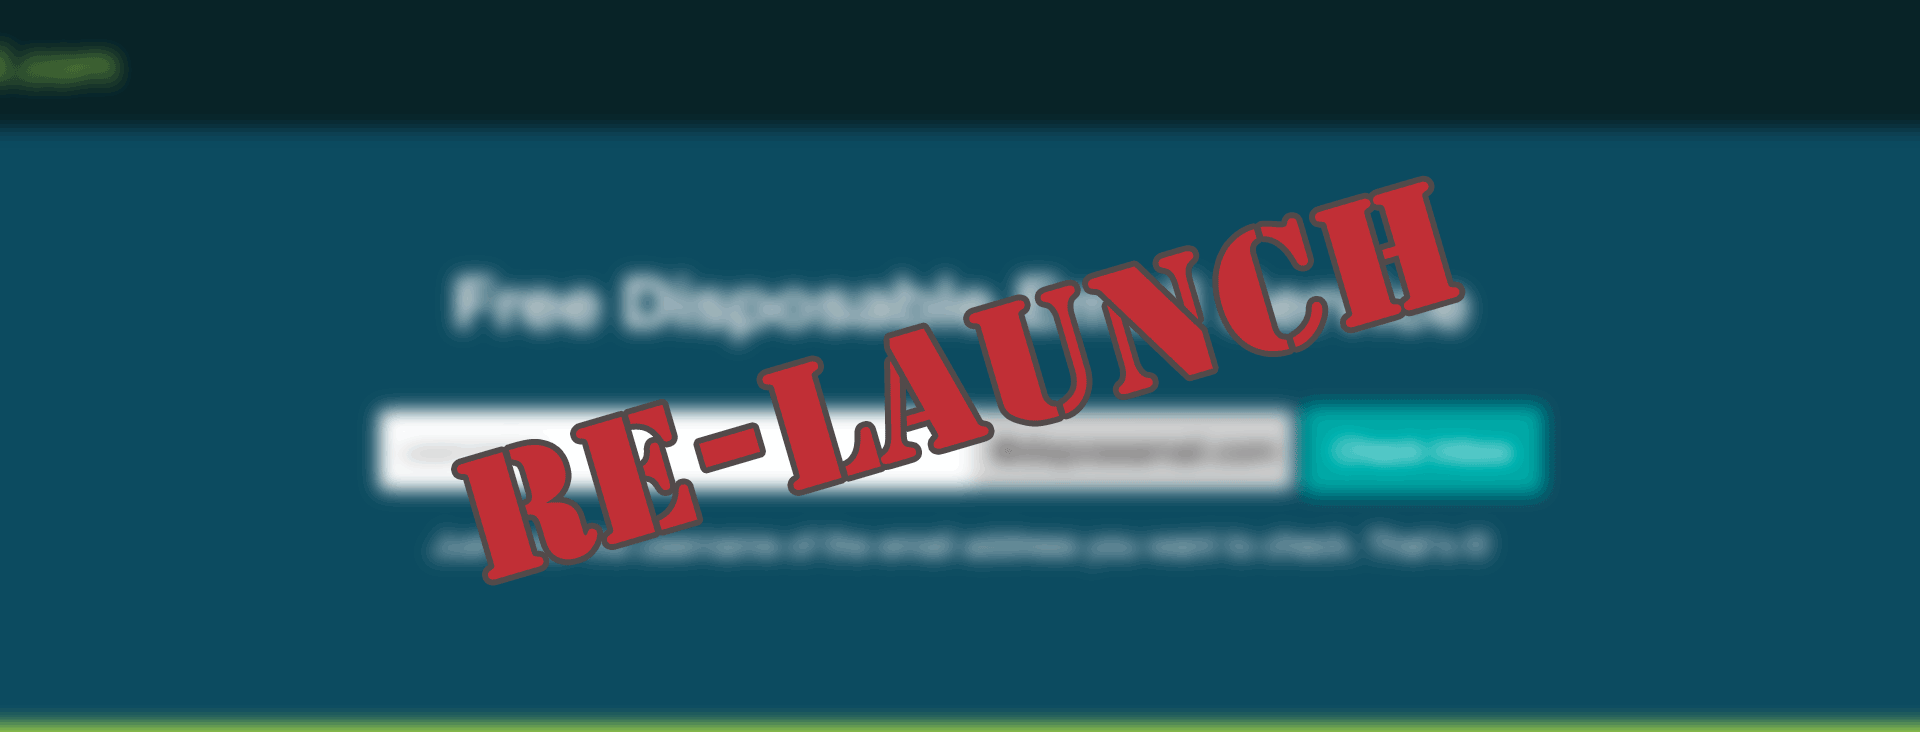 Disposeamail Re-launch